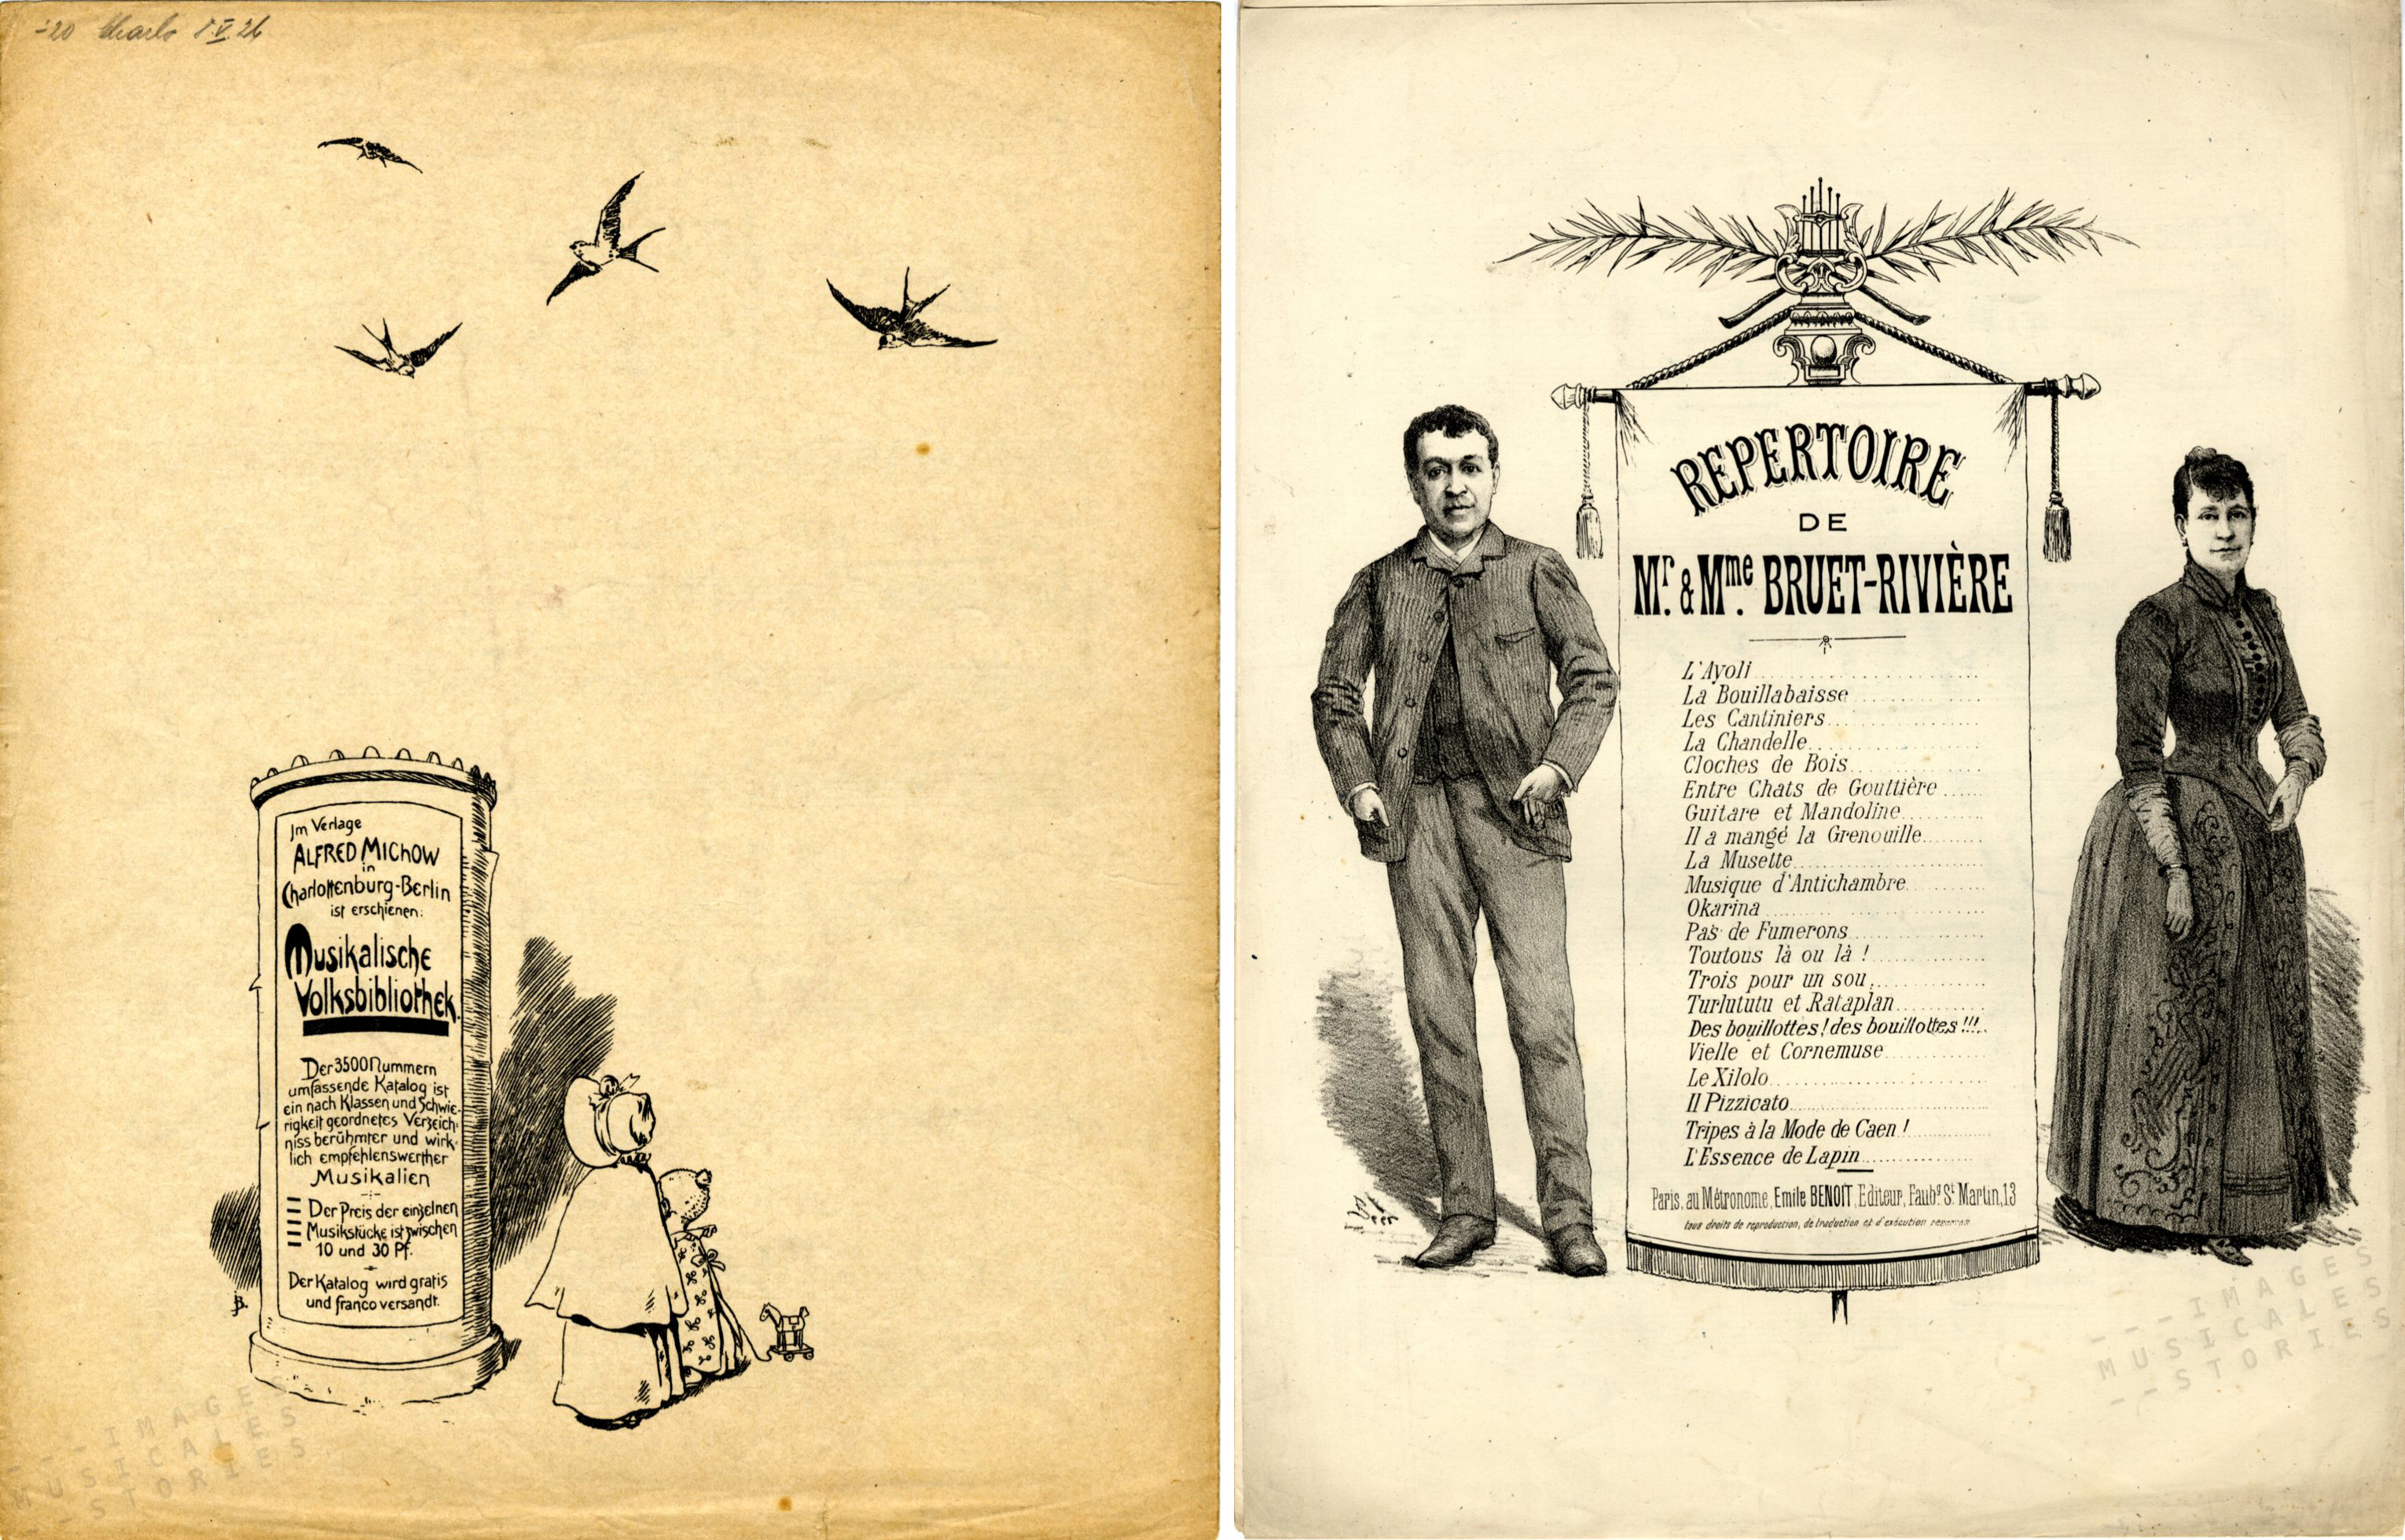 Late 19th-century illustrated catalogs from Musikalische Volksbibliothek (Berlin) and from Emile Benoit (Paris)